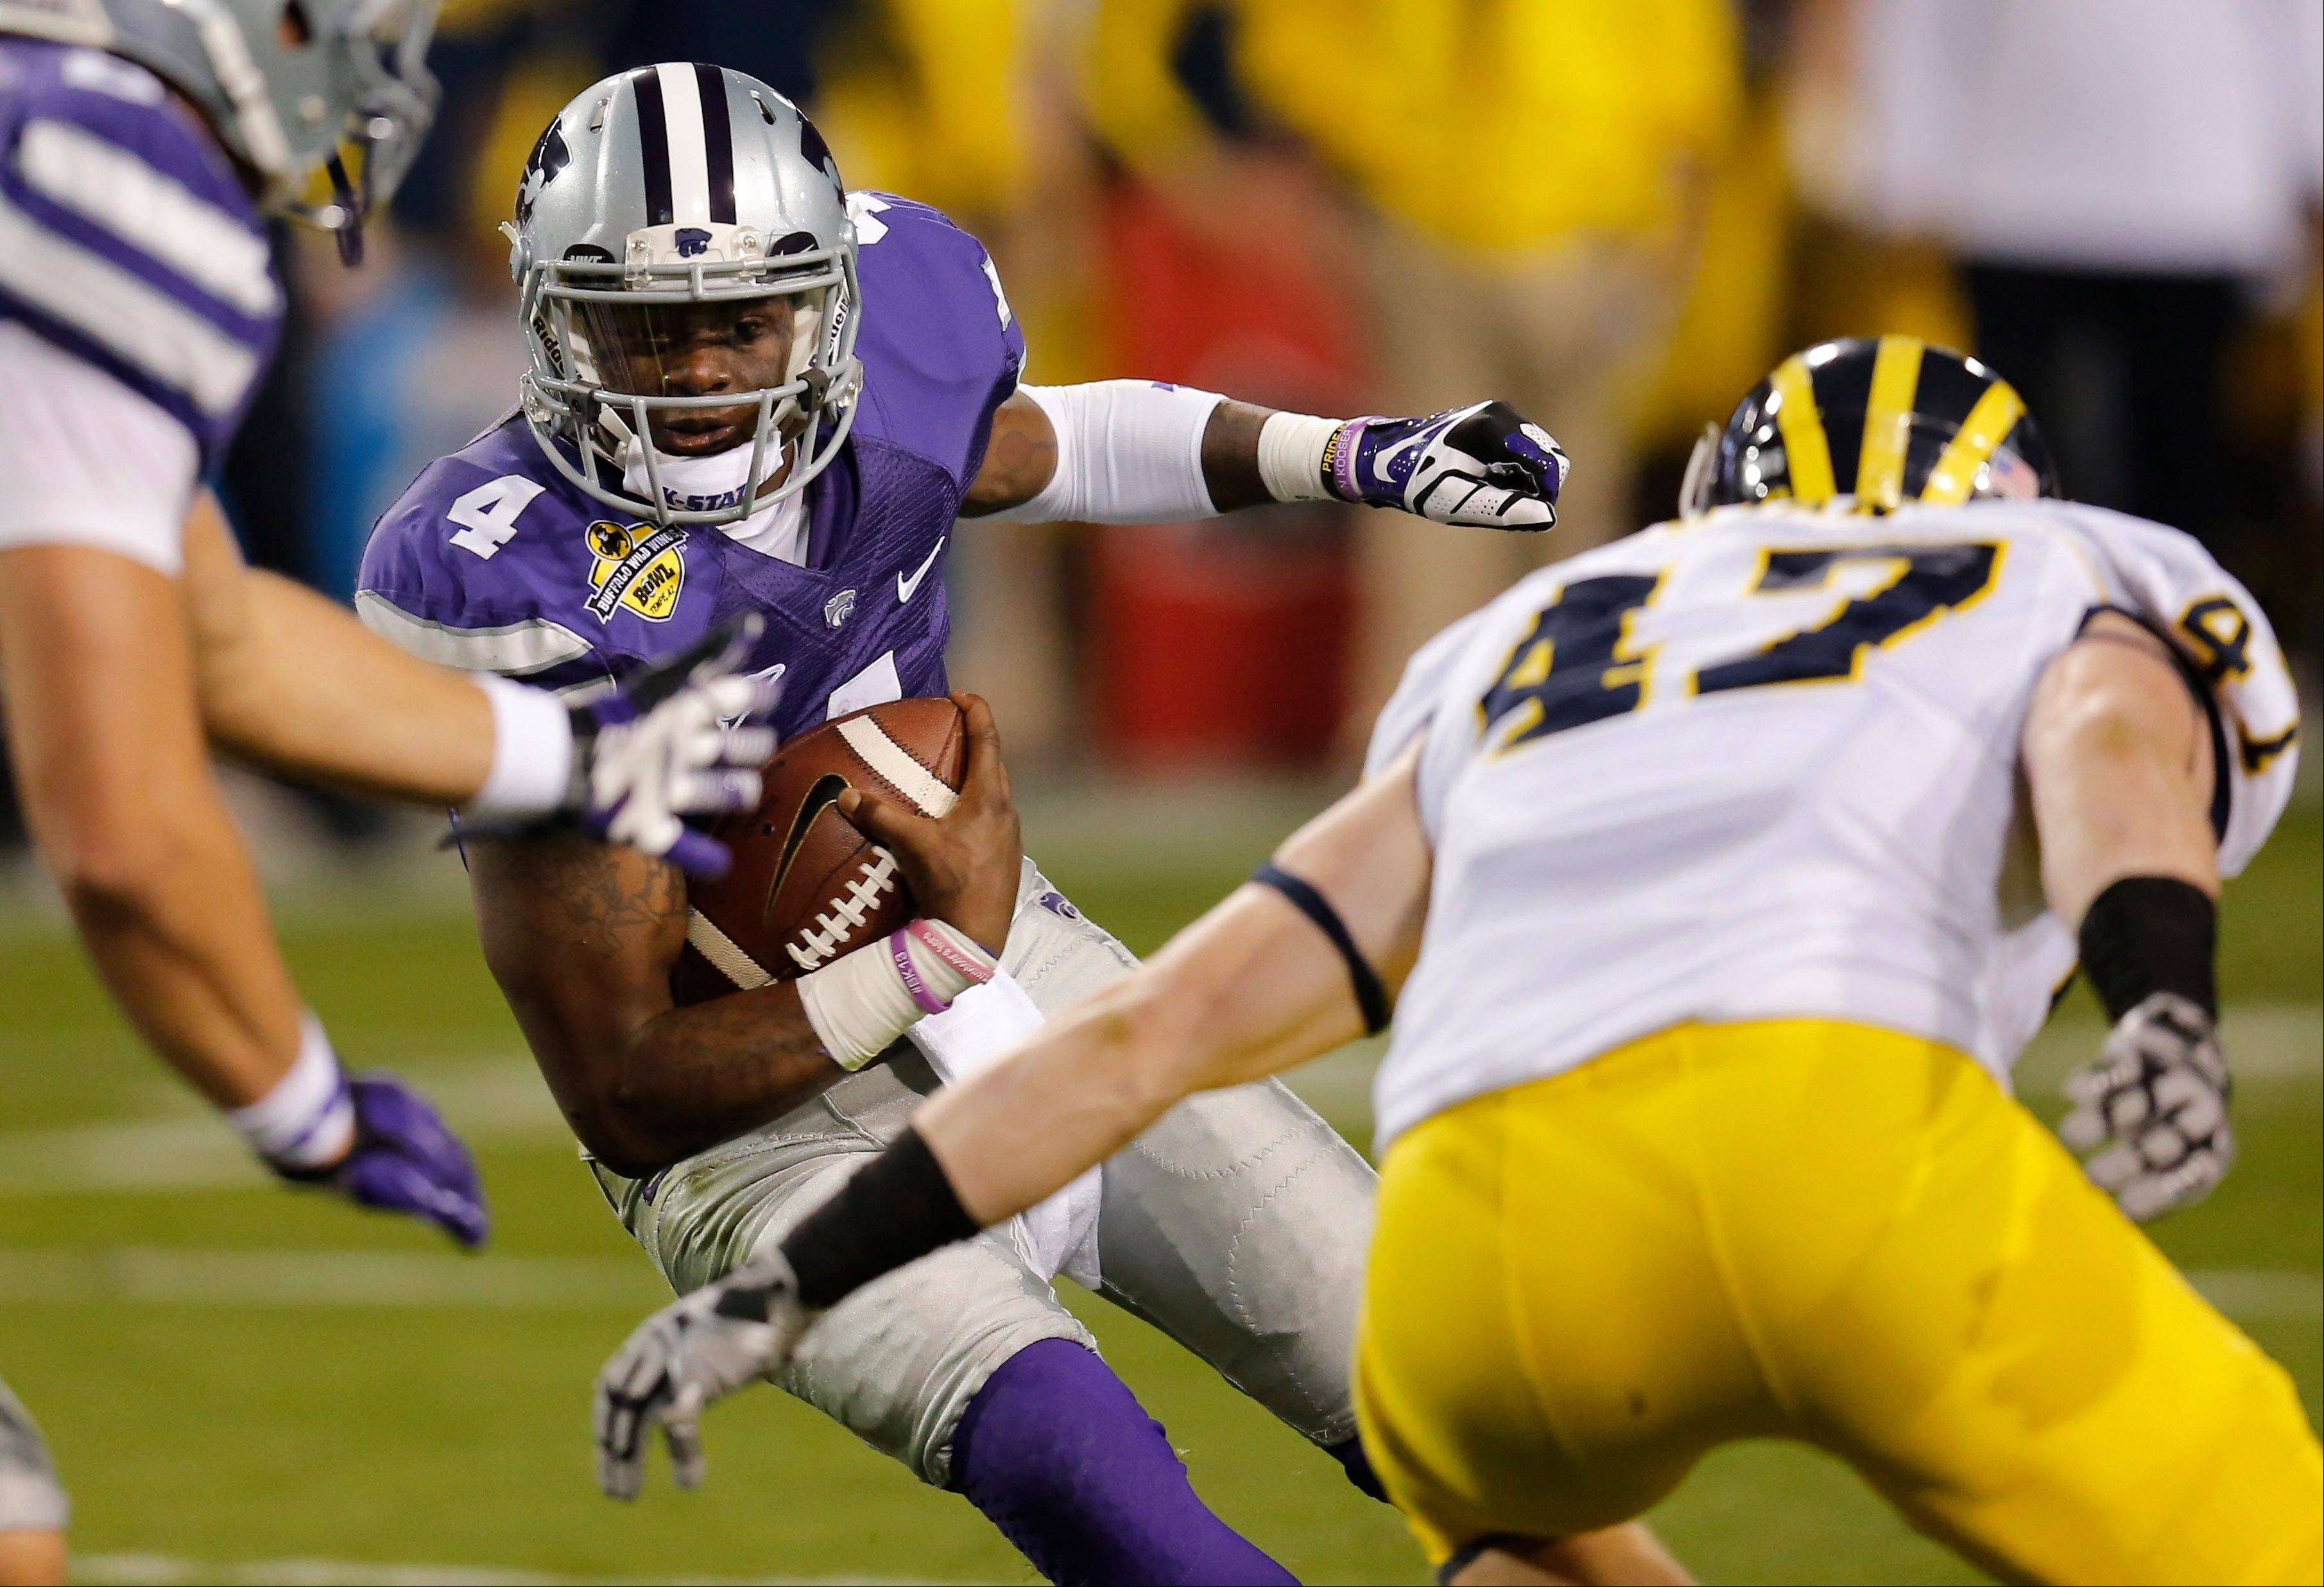 Kansas State quarterback Daniel Sams (4) scrambles as Michigan linebacker Jake Ryan (47) defends during the first half of the Buffalo Wild Wings Bowl NCAA college football game on Saturday, Dec. 28, 2013, in Tempe, Ariz.